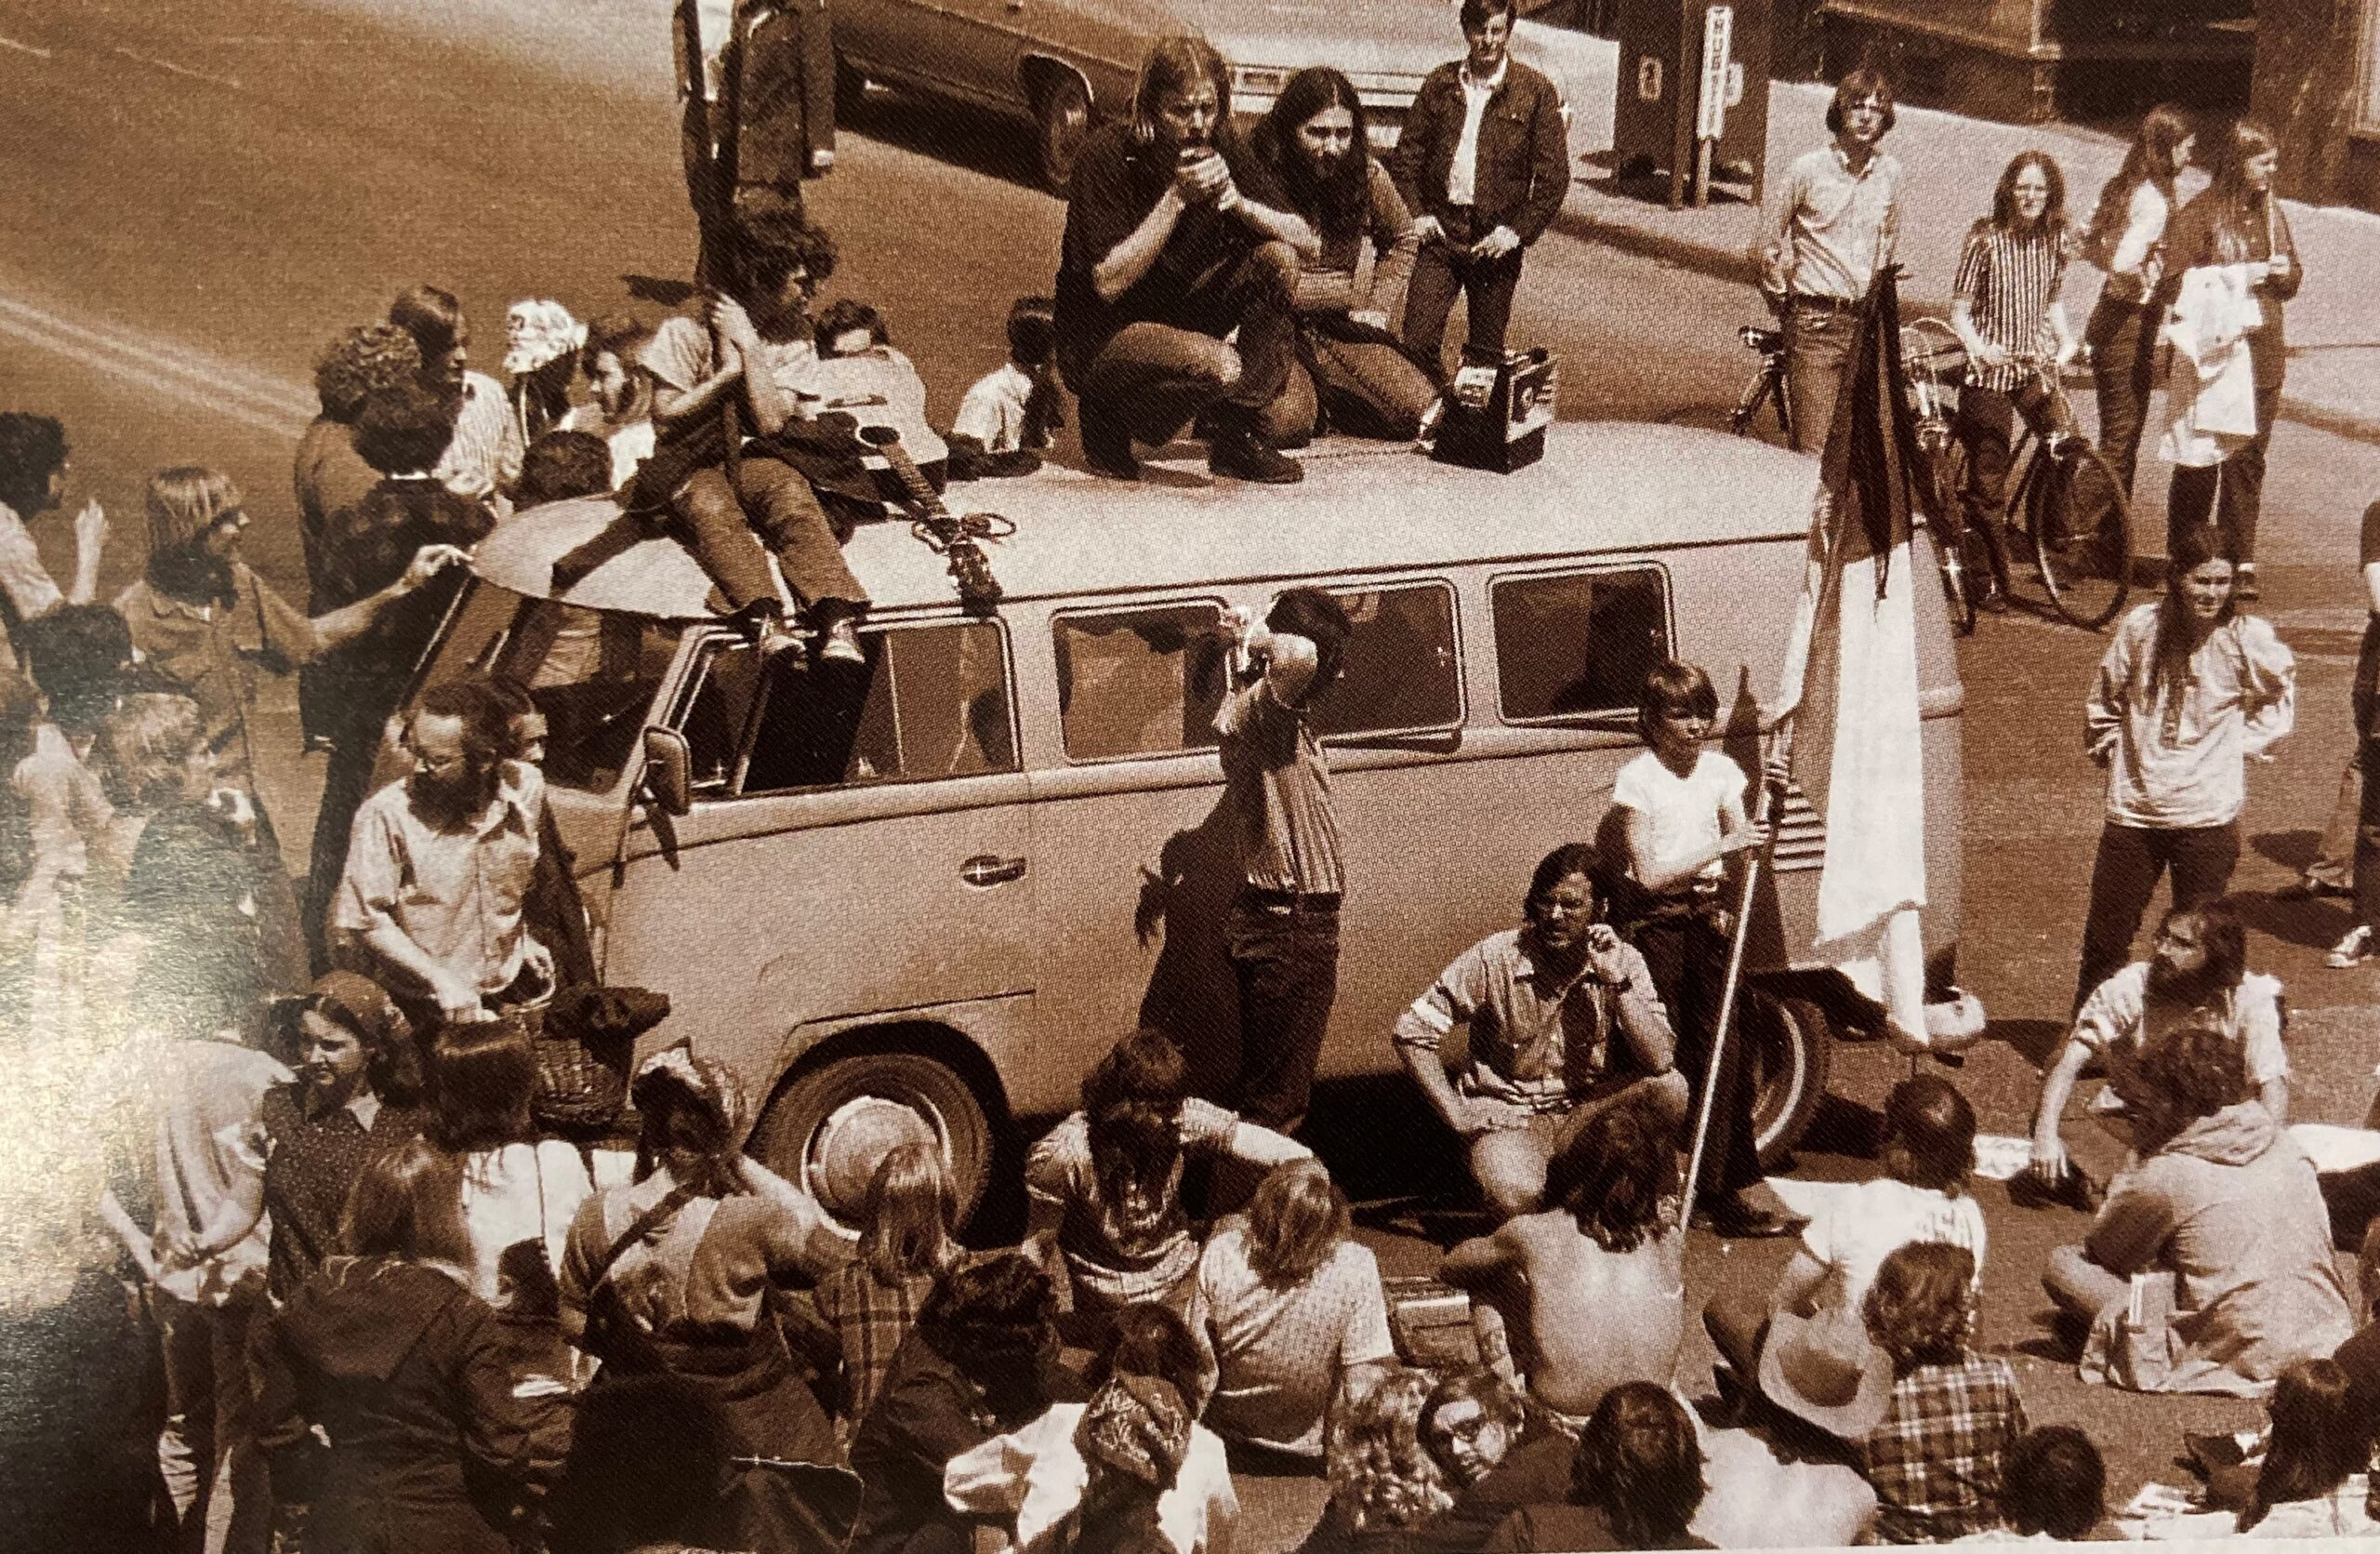 Students protesting on a van from the Today Magazine 2002 issue